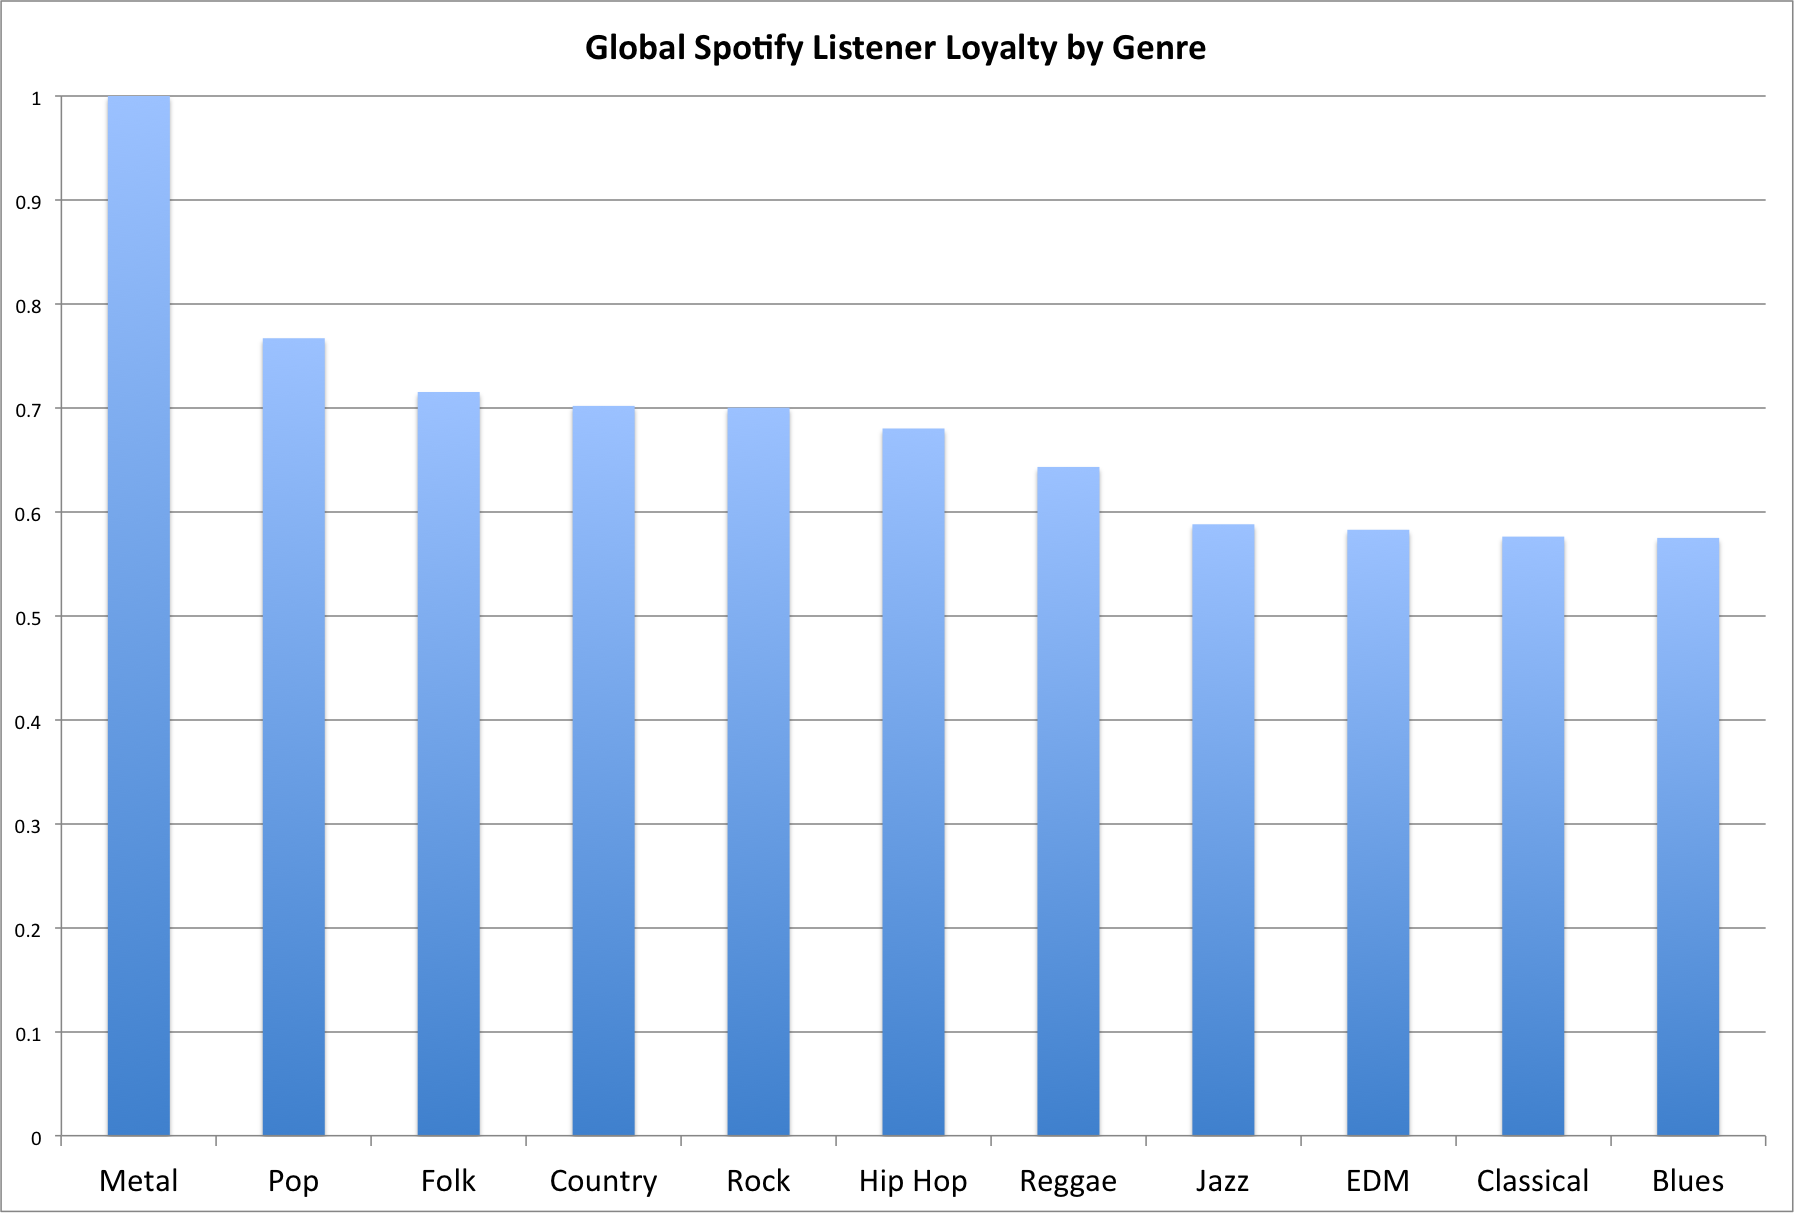 Spotify Just Discovered That Metal Fans Are Way More Loyal